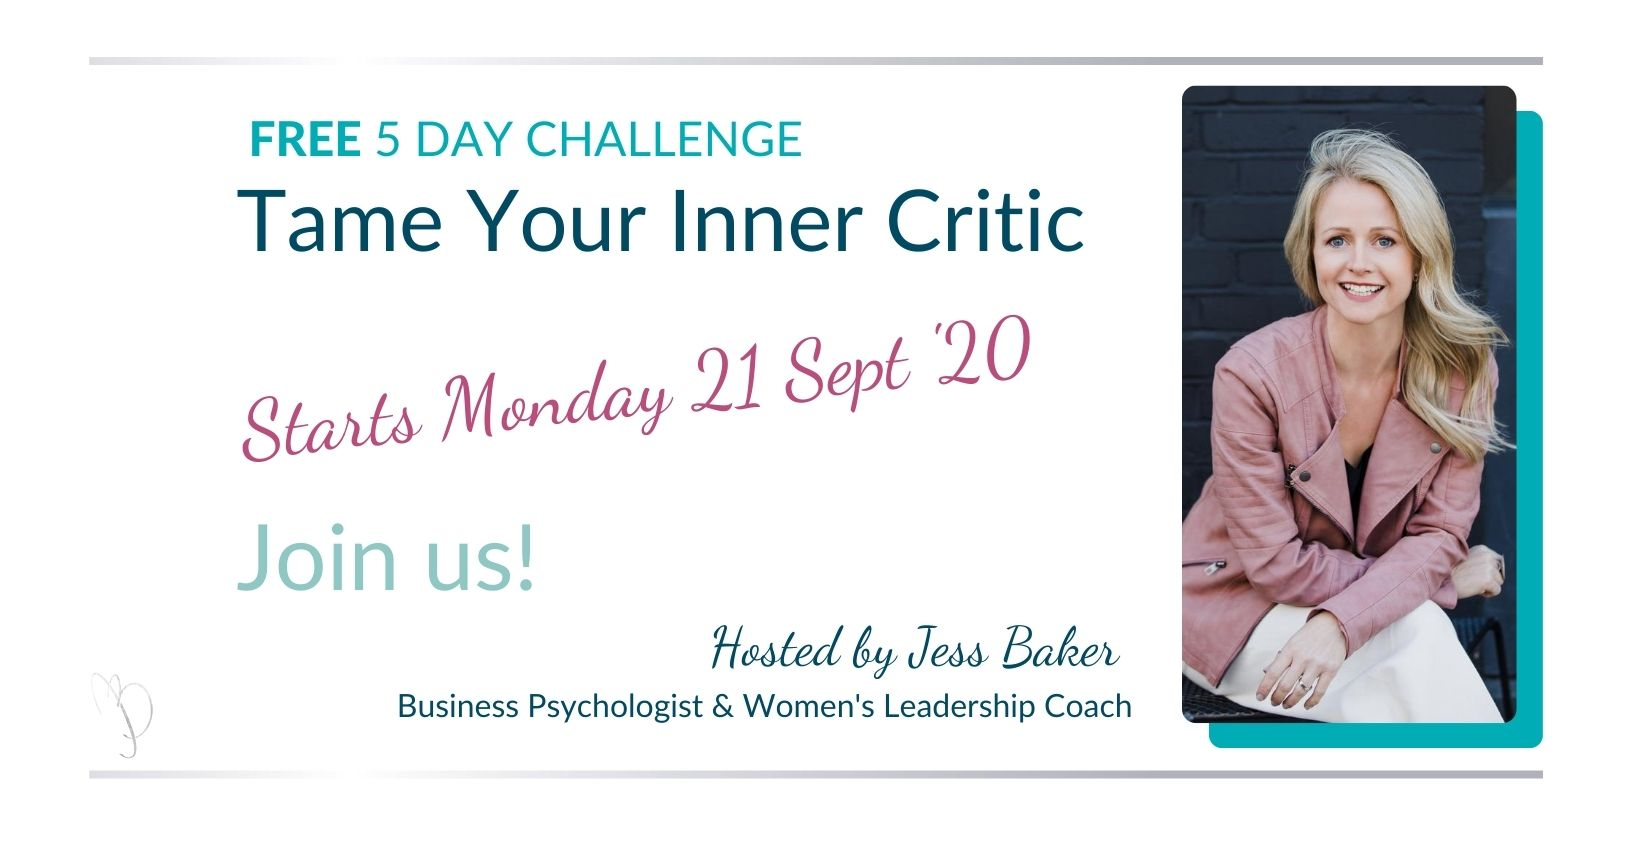 TAME YOUR INNER CRITIC JESS BAKER